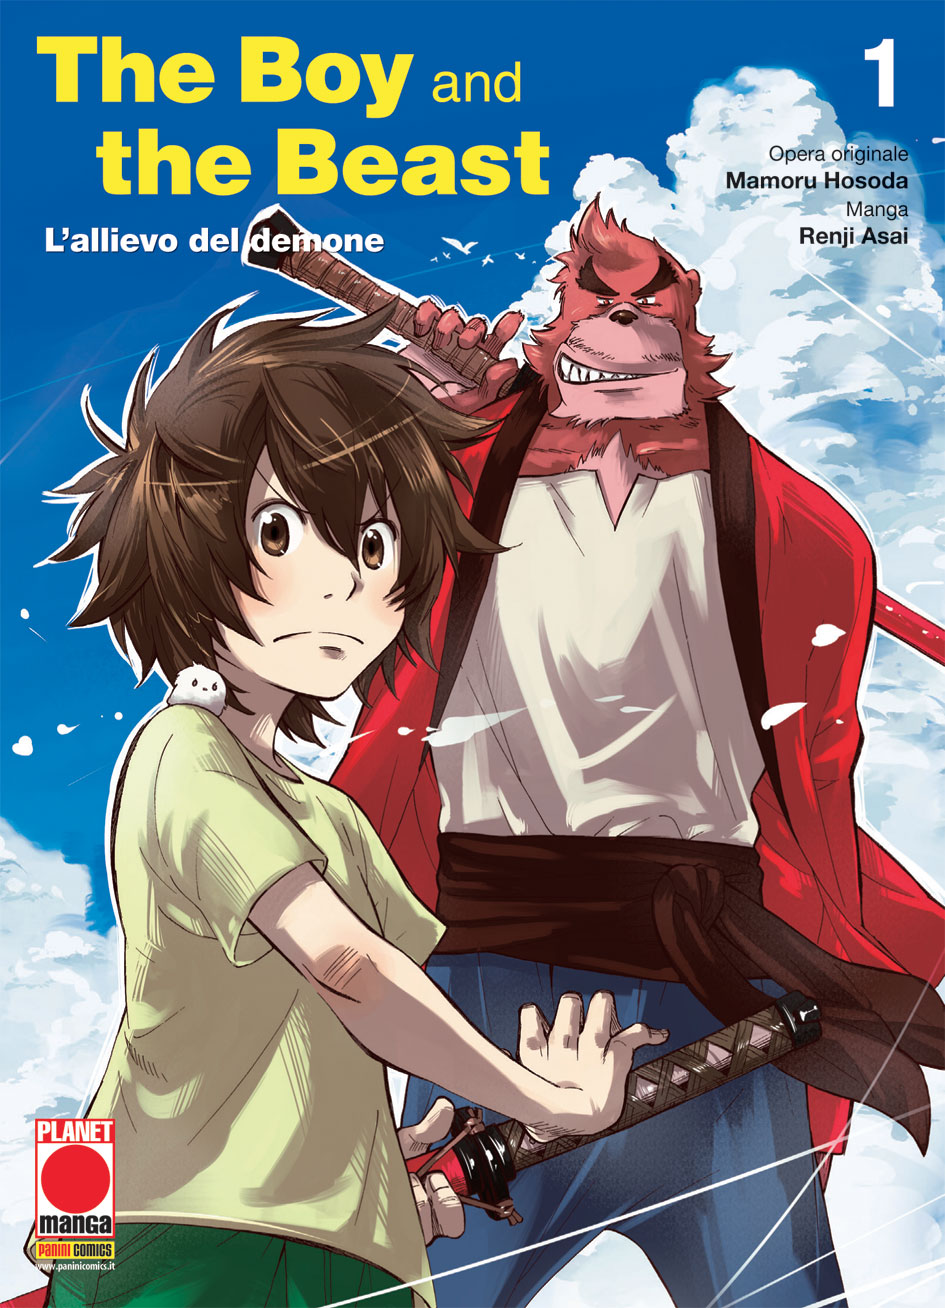 The Boy and the Beast: L'allievo del demone vol. 1